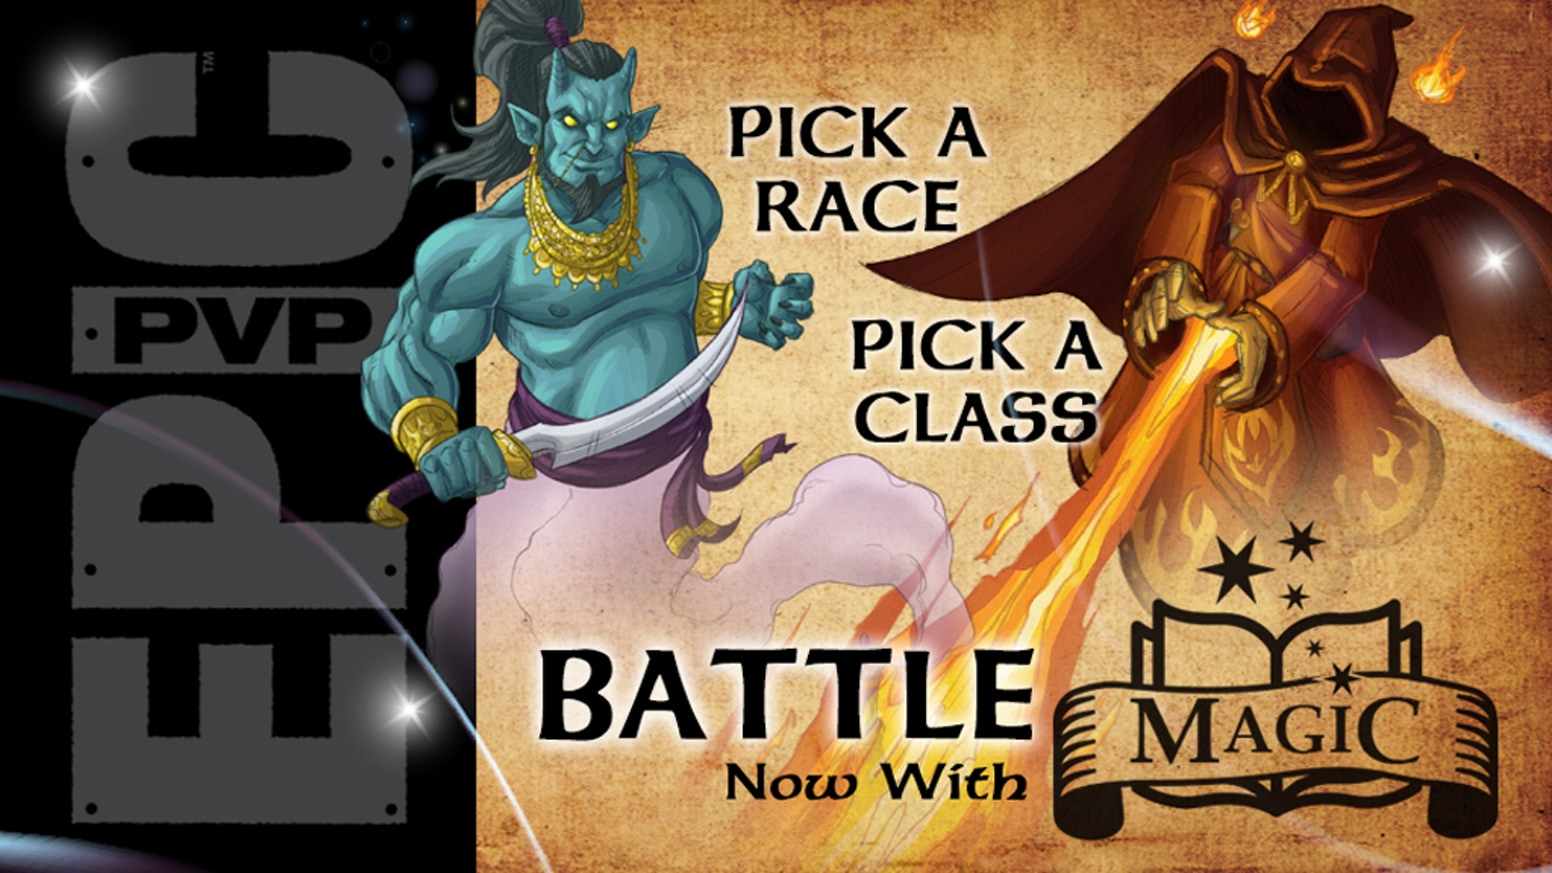 Pick a magic Class a magic Race, shuffle and battle with this stand-alone game that is 100% compatible with Epic PvP: Fantasy.